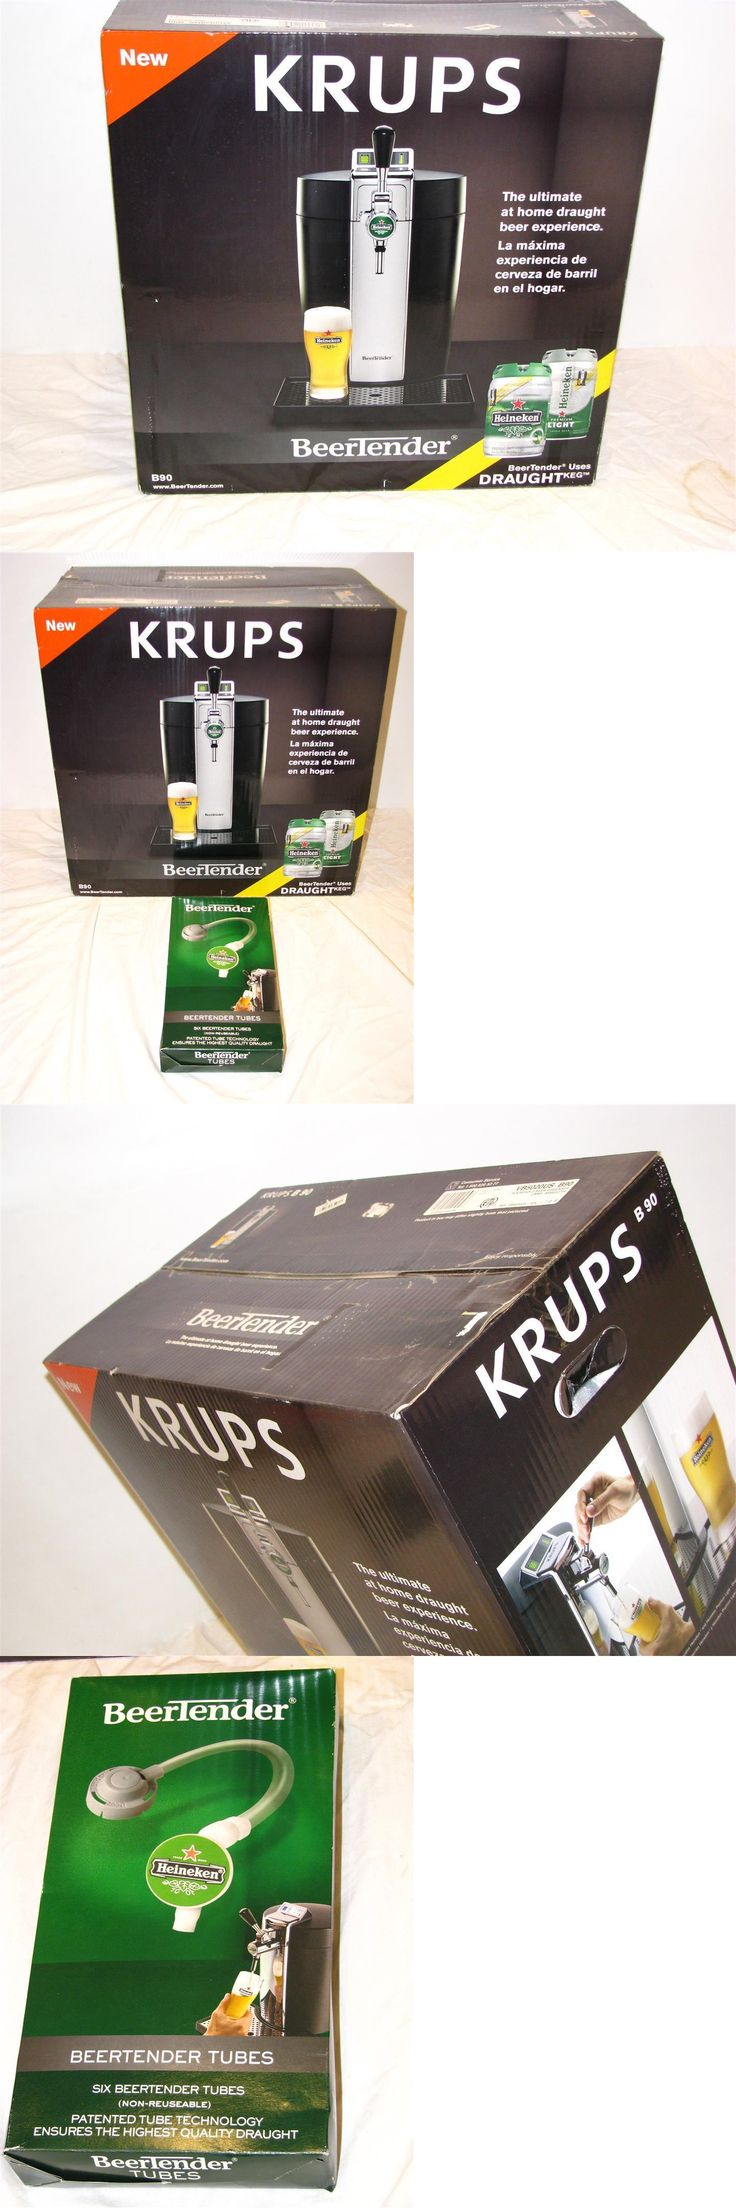 Liquor and Beer Dispensers 103429: Krups B90 Beertender Home Beer Tap System Brand New With Tubes -> BUY IT NOW ONLY: $150 on eBay!